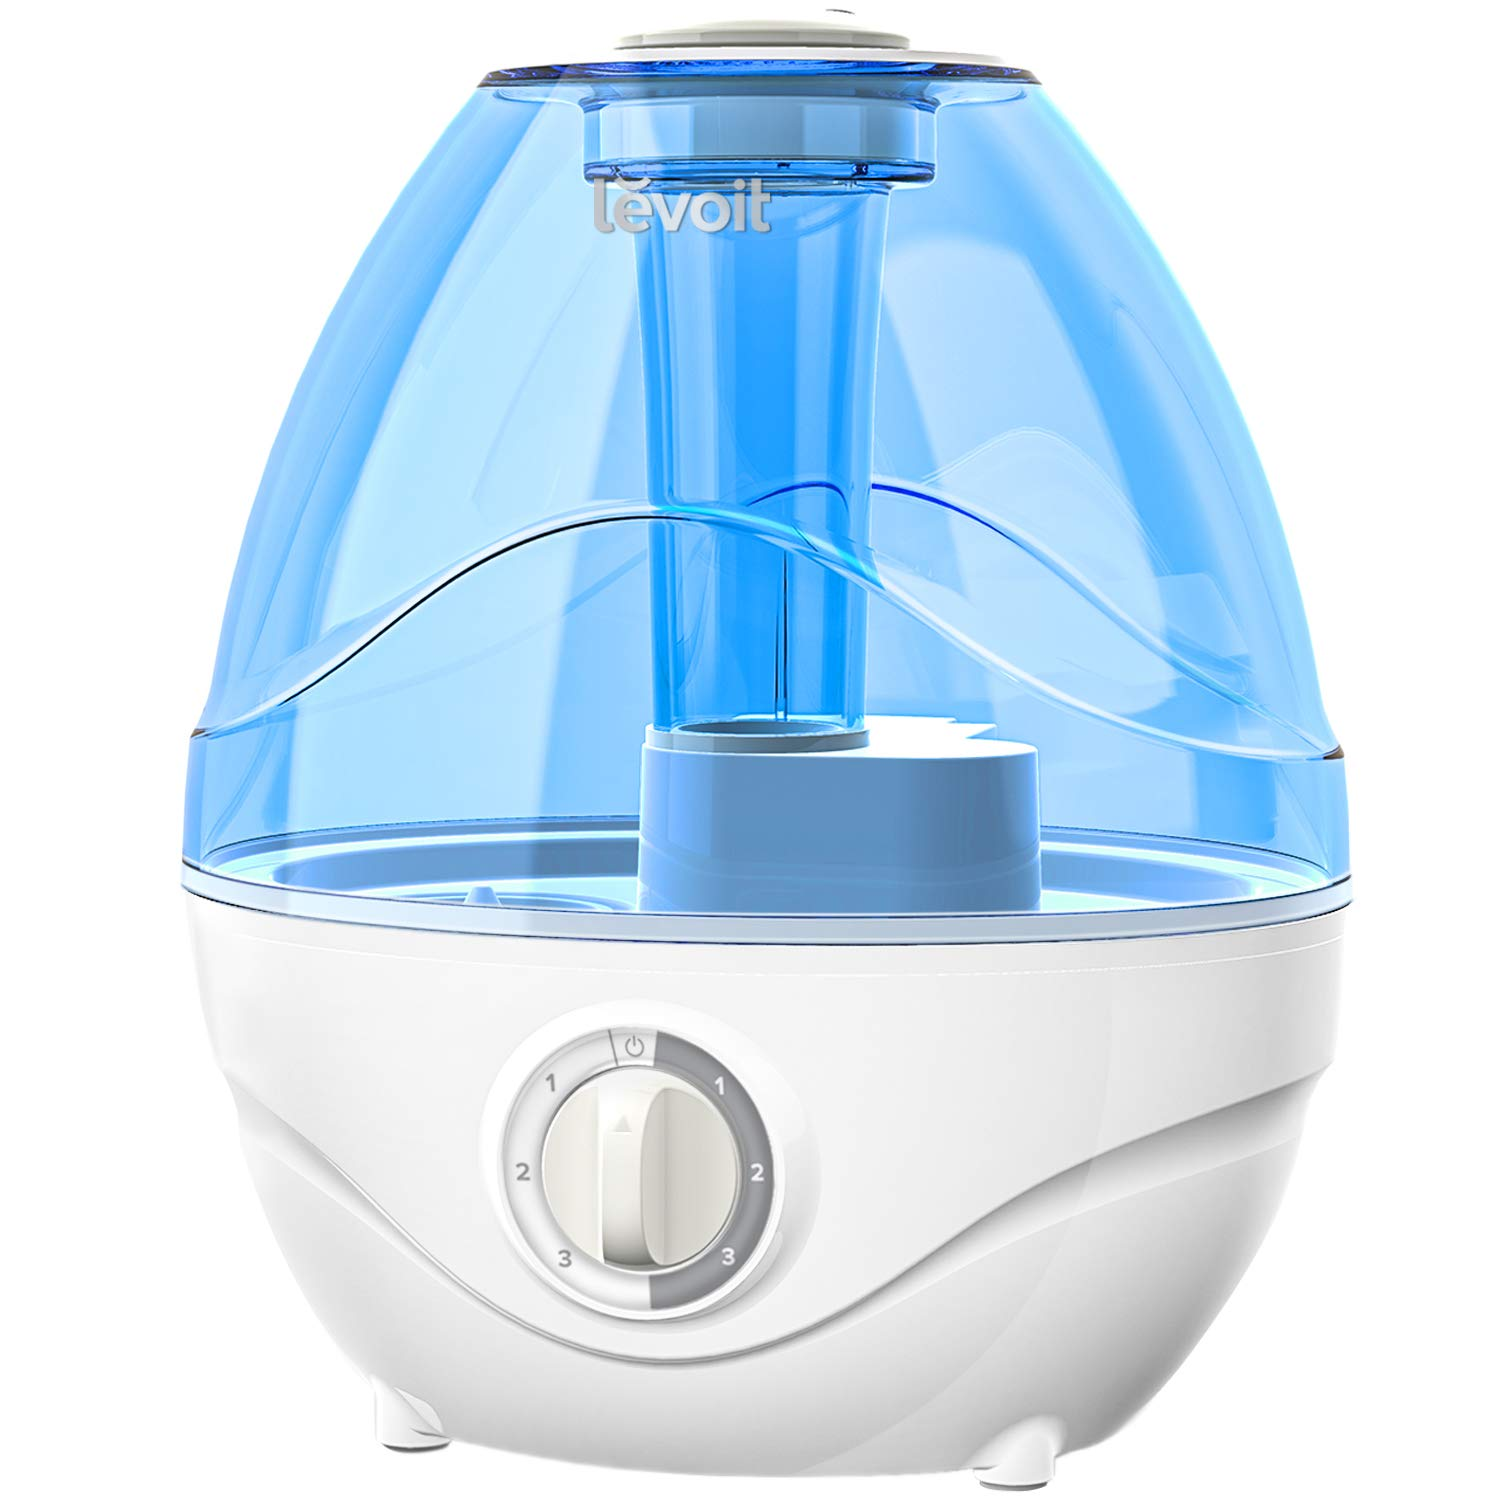 LEVOIT Humidifiers for Bedroom, 2.4L Ultrasonic Cool Mist Humidifier for Babies (BPA Free), Quiet Operation, Auto Shut-Off and Night Light, Lasts up to 24 Hours, 2-Year Warranty, AC 100-240V by LEVOIT